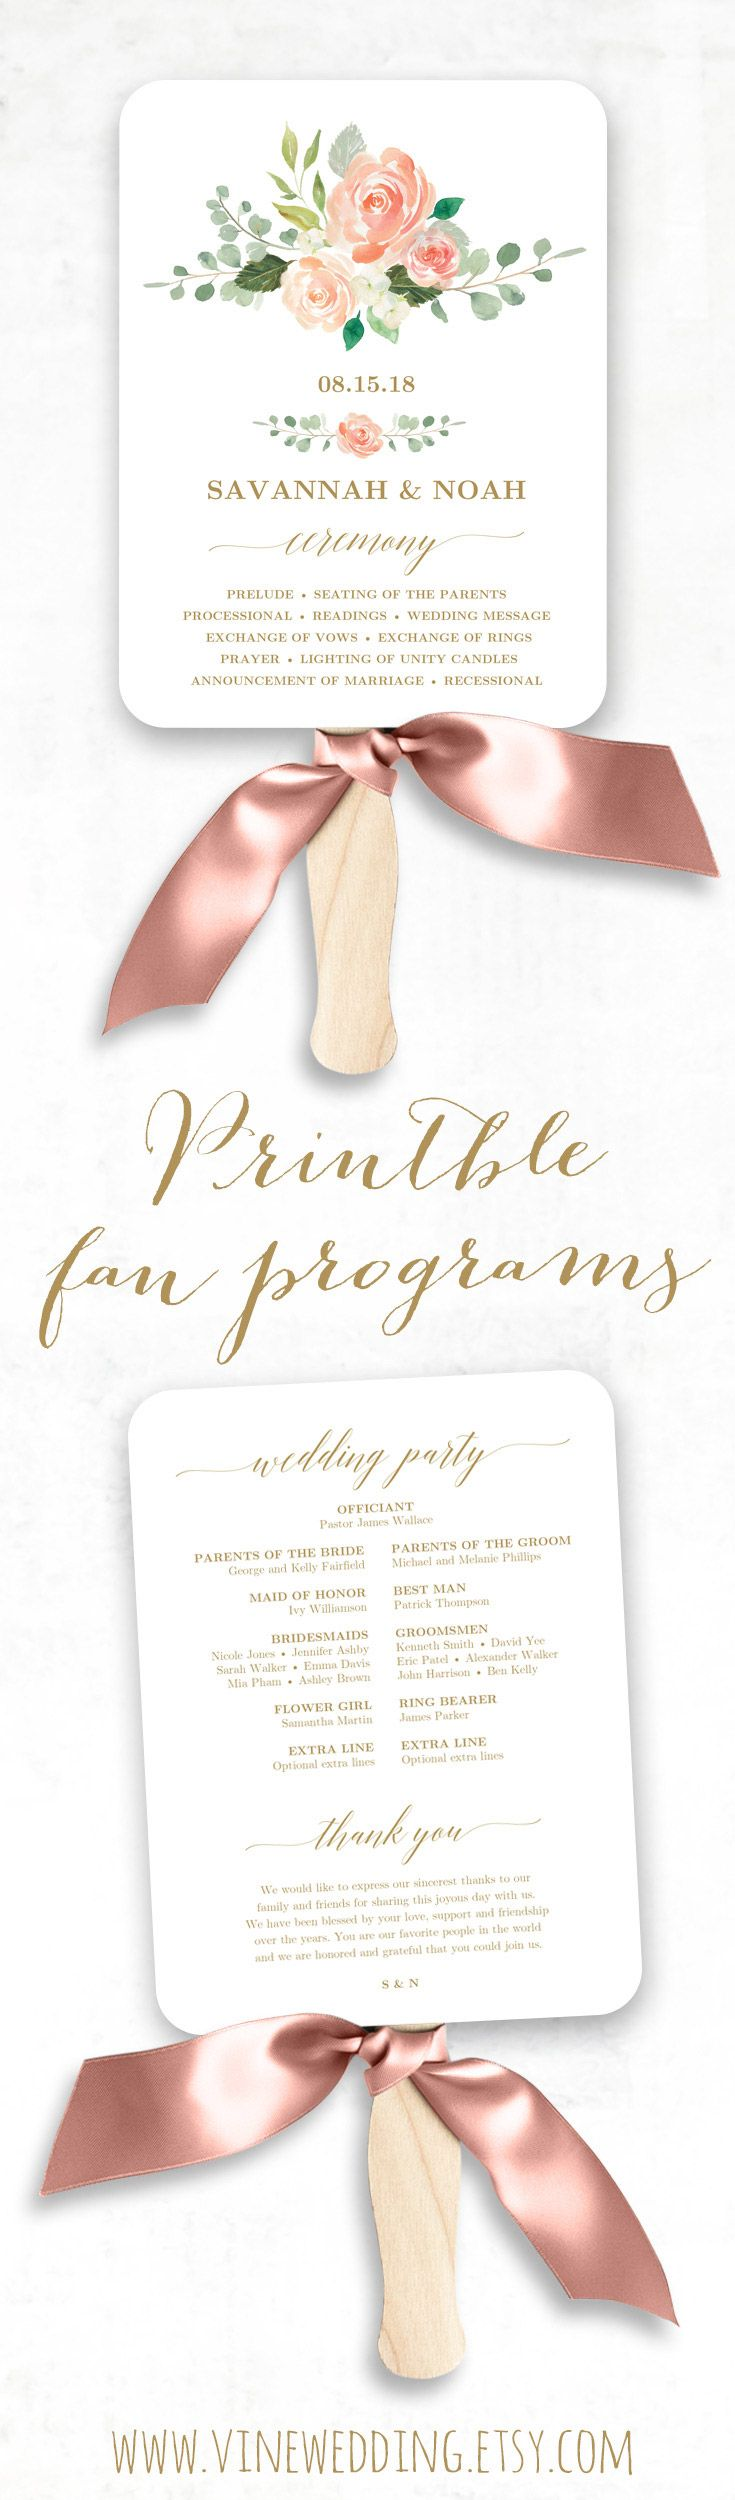 Peach Blush Wedding Fan Program. Printable Wedding Fan Program. #wedding #program #peach #blush #gold #diy #vinewedding